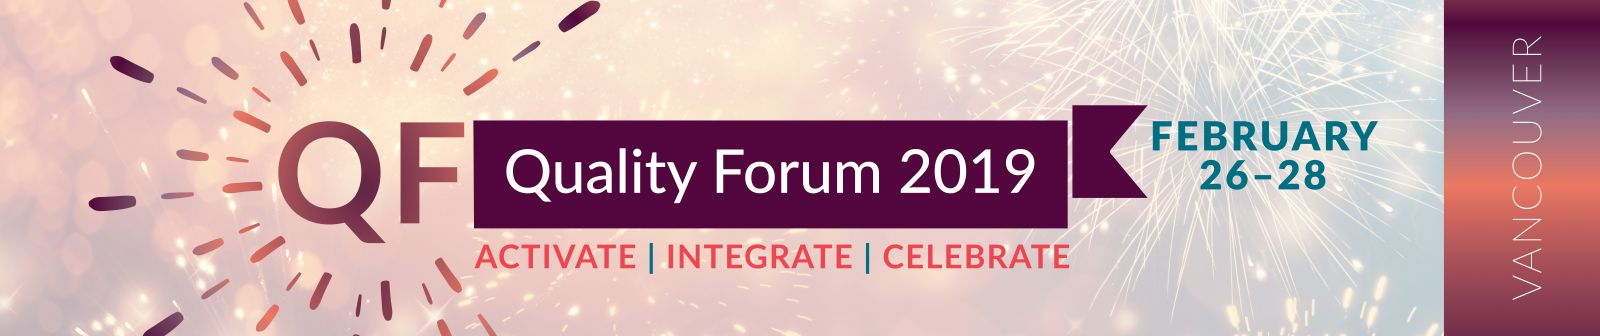 Register for Quality Forum 2019!